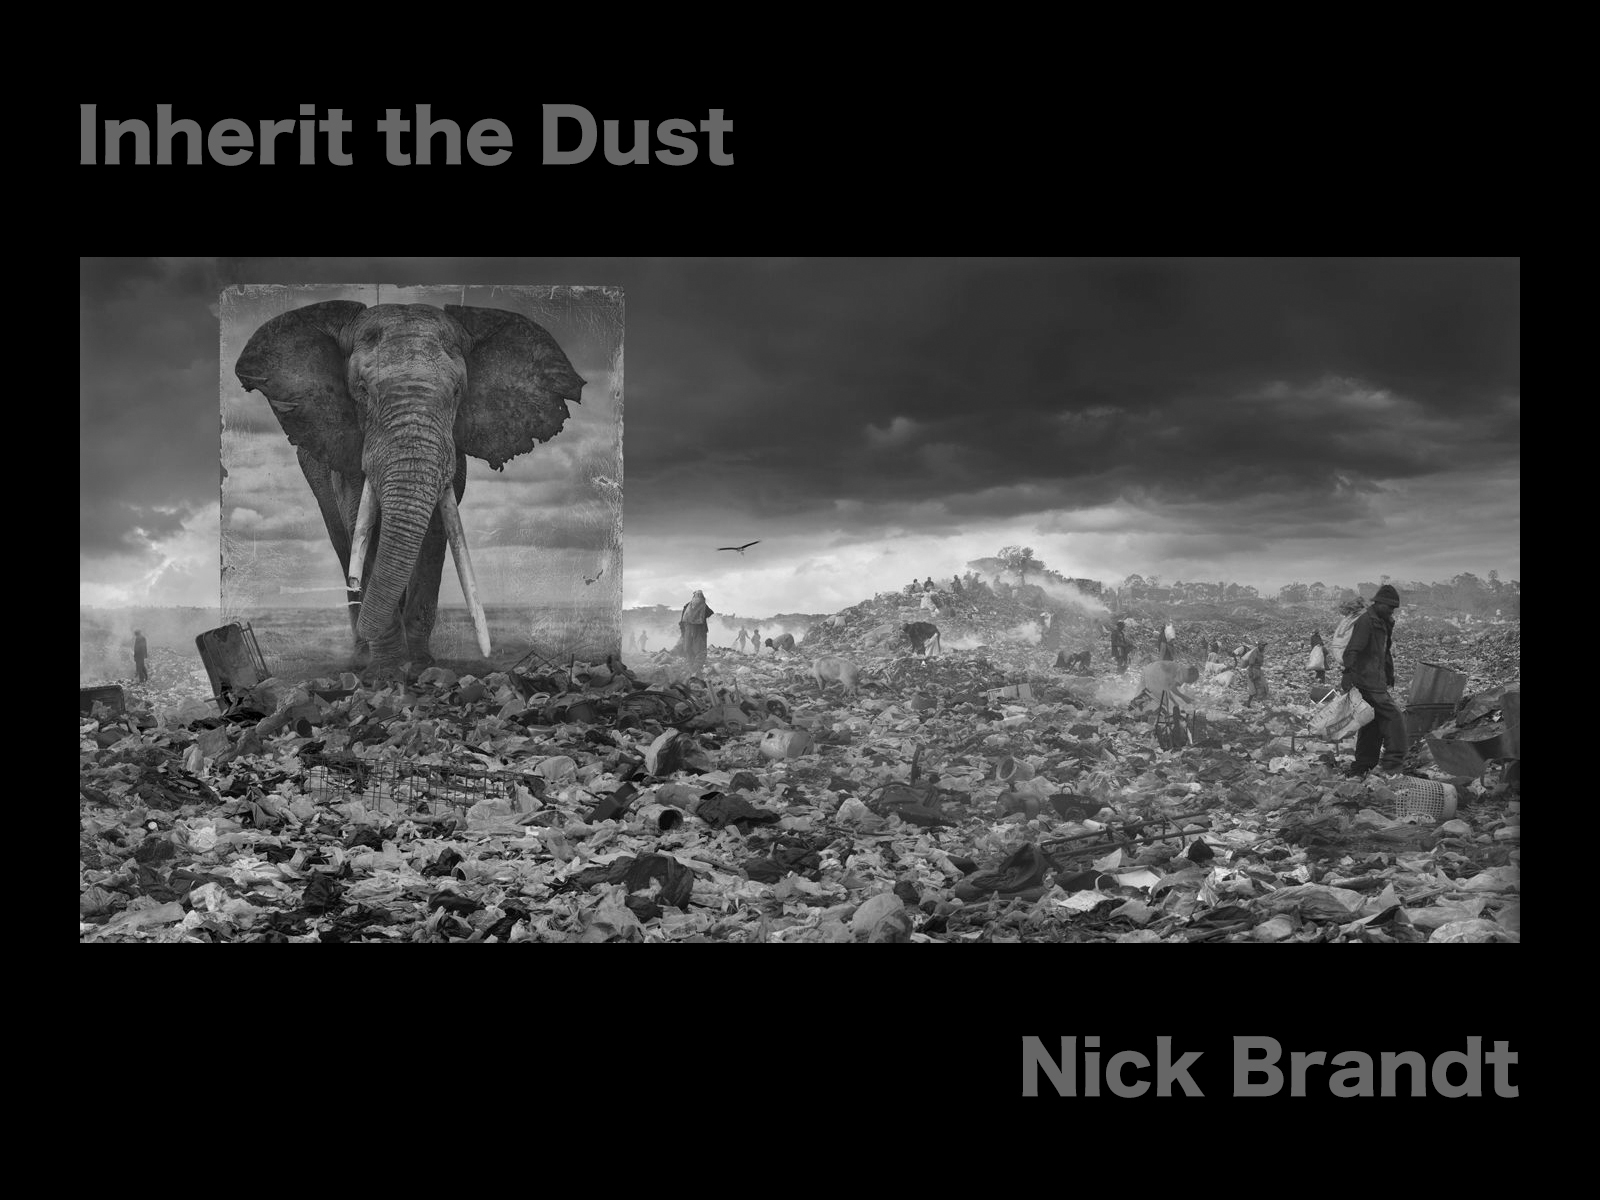 NICK BRANDT – Inherit the Dust